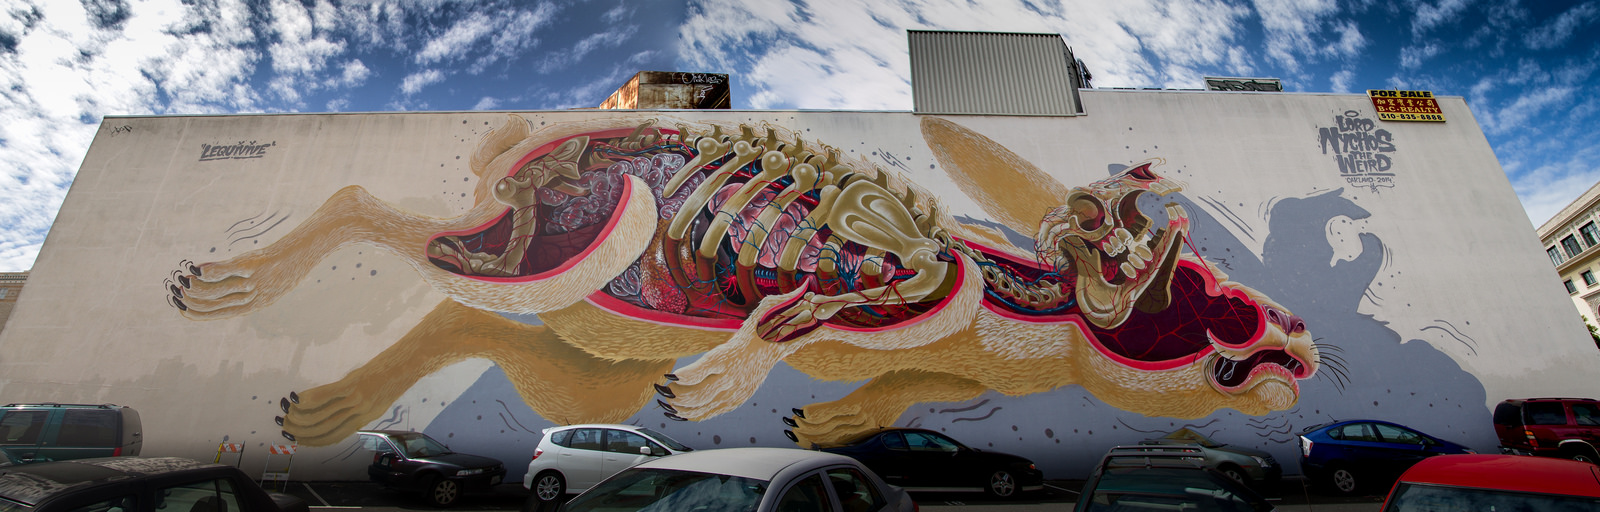 nychos-easter-rabbit-new-mural-in-san-francisco-00